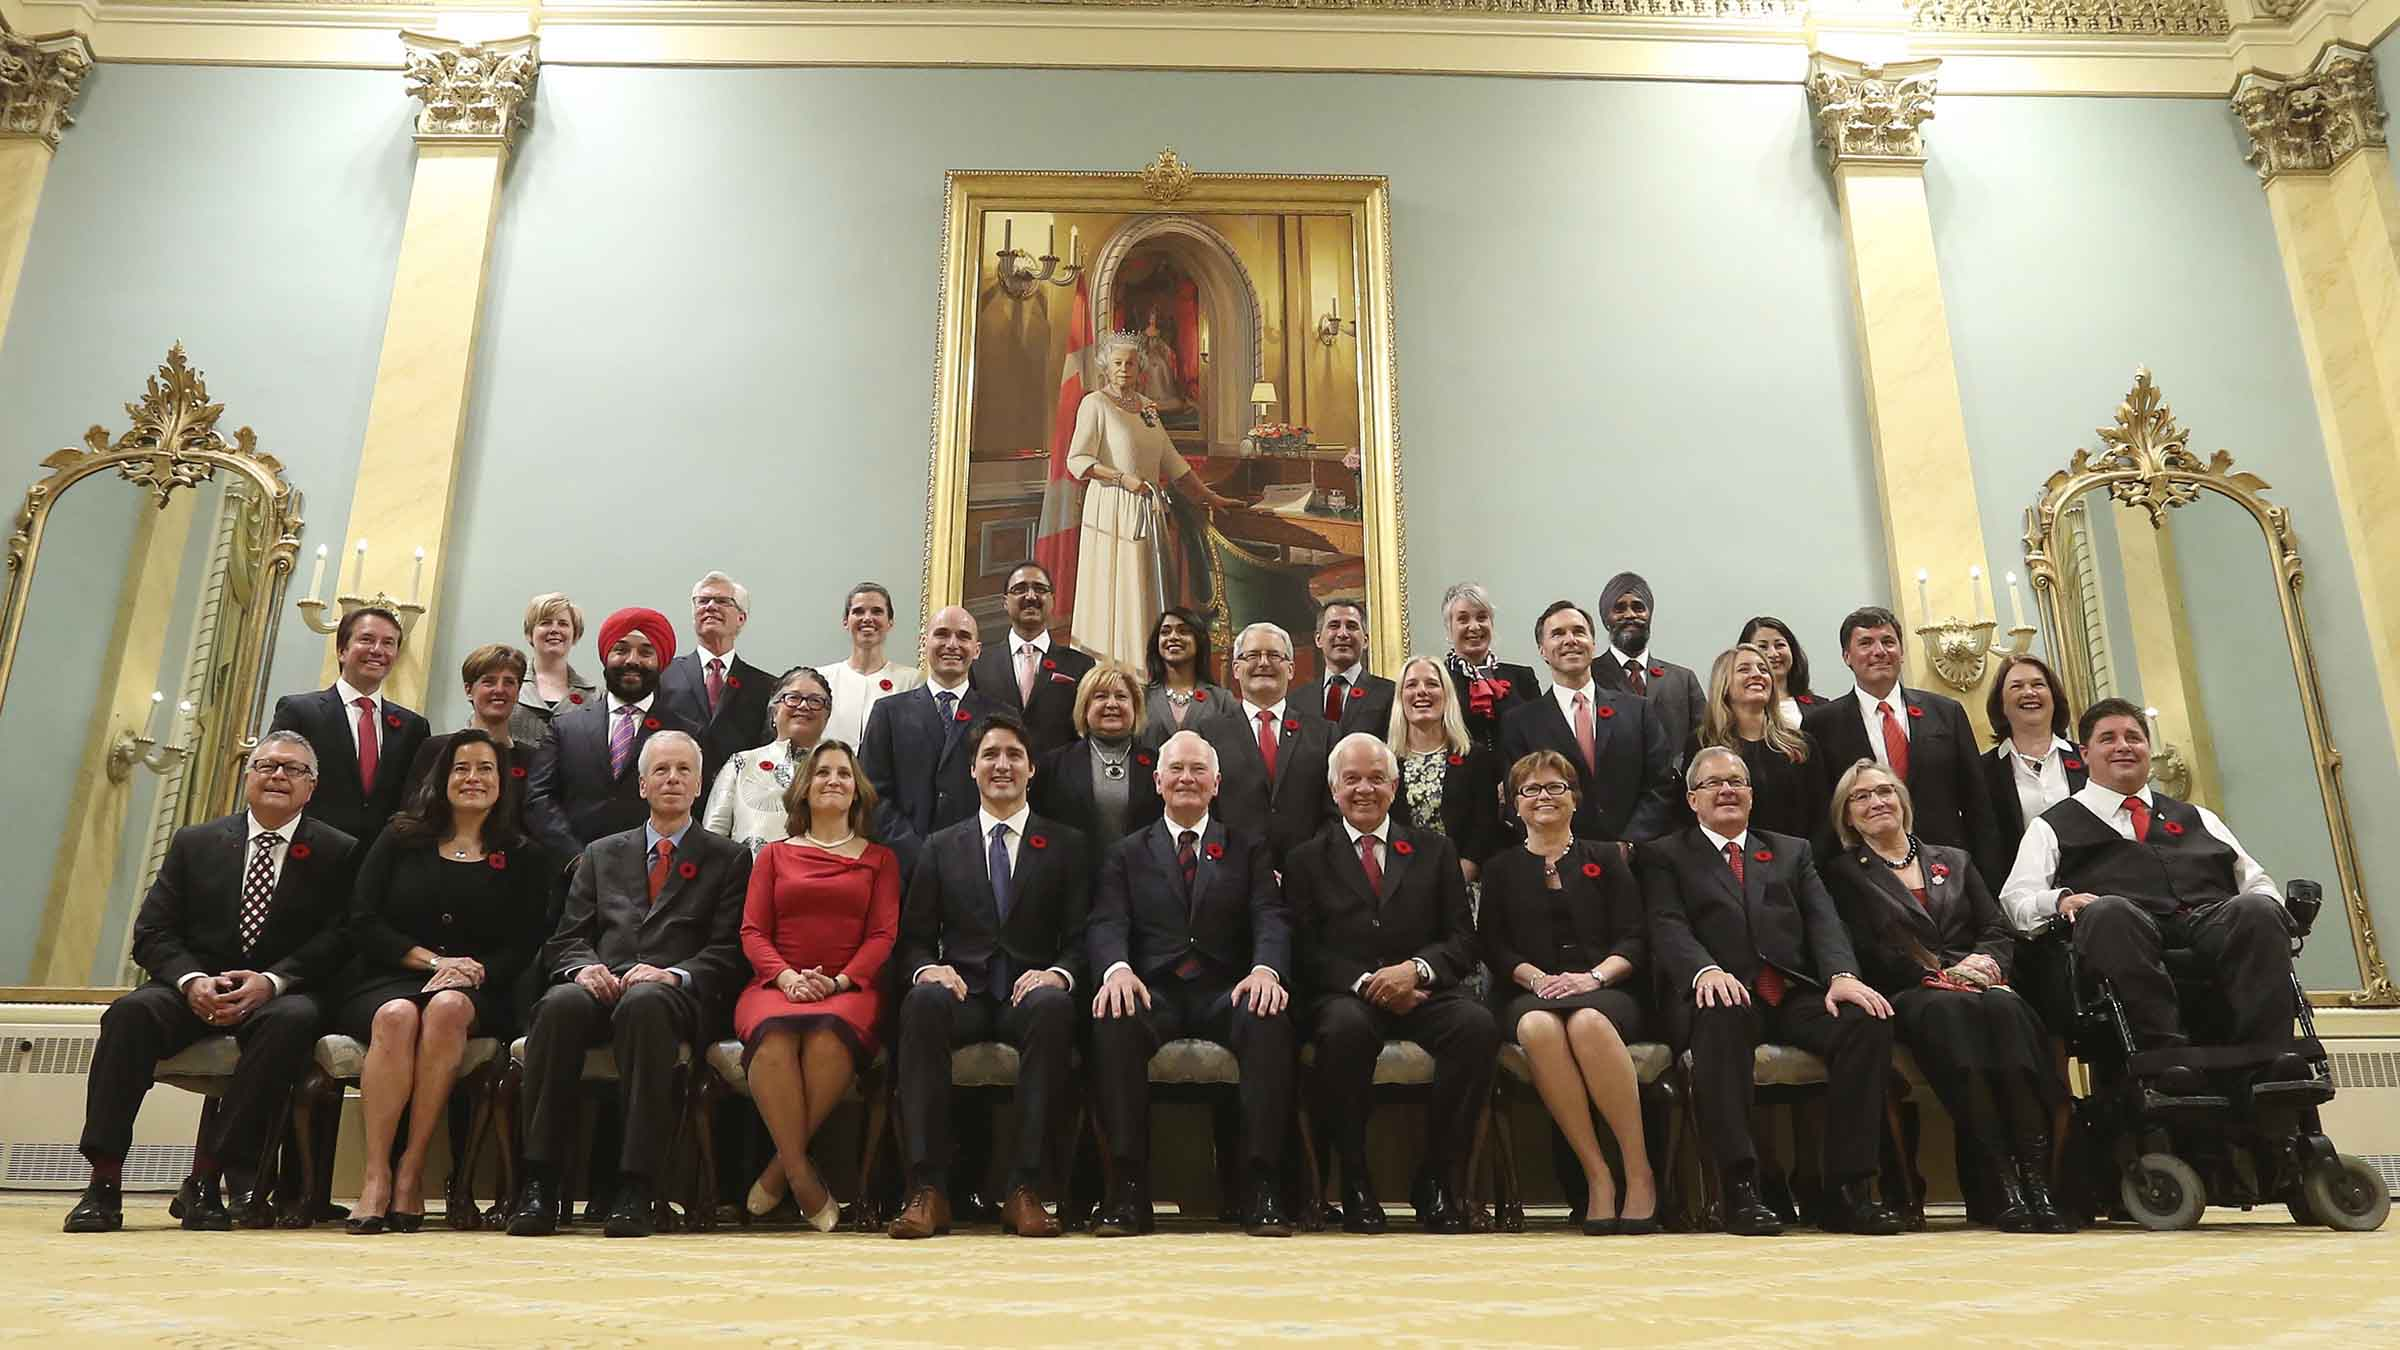 Canada's new PM Trudeau poses with his cabinet after their swearing-in ceremony at Rideau Hall in Ottawa